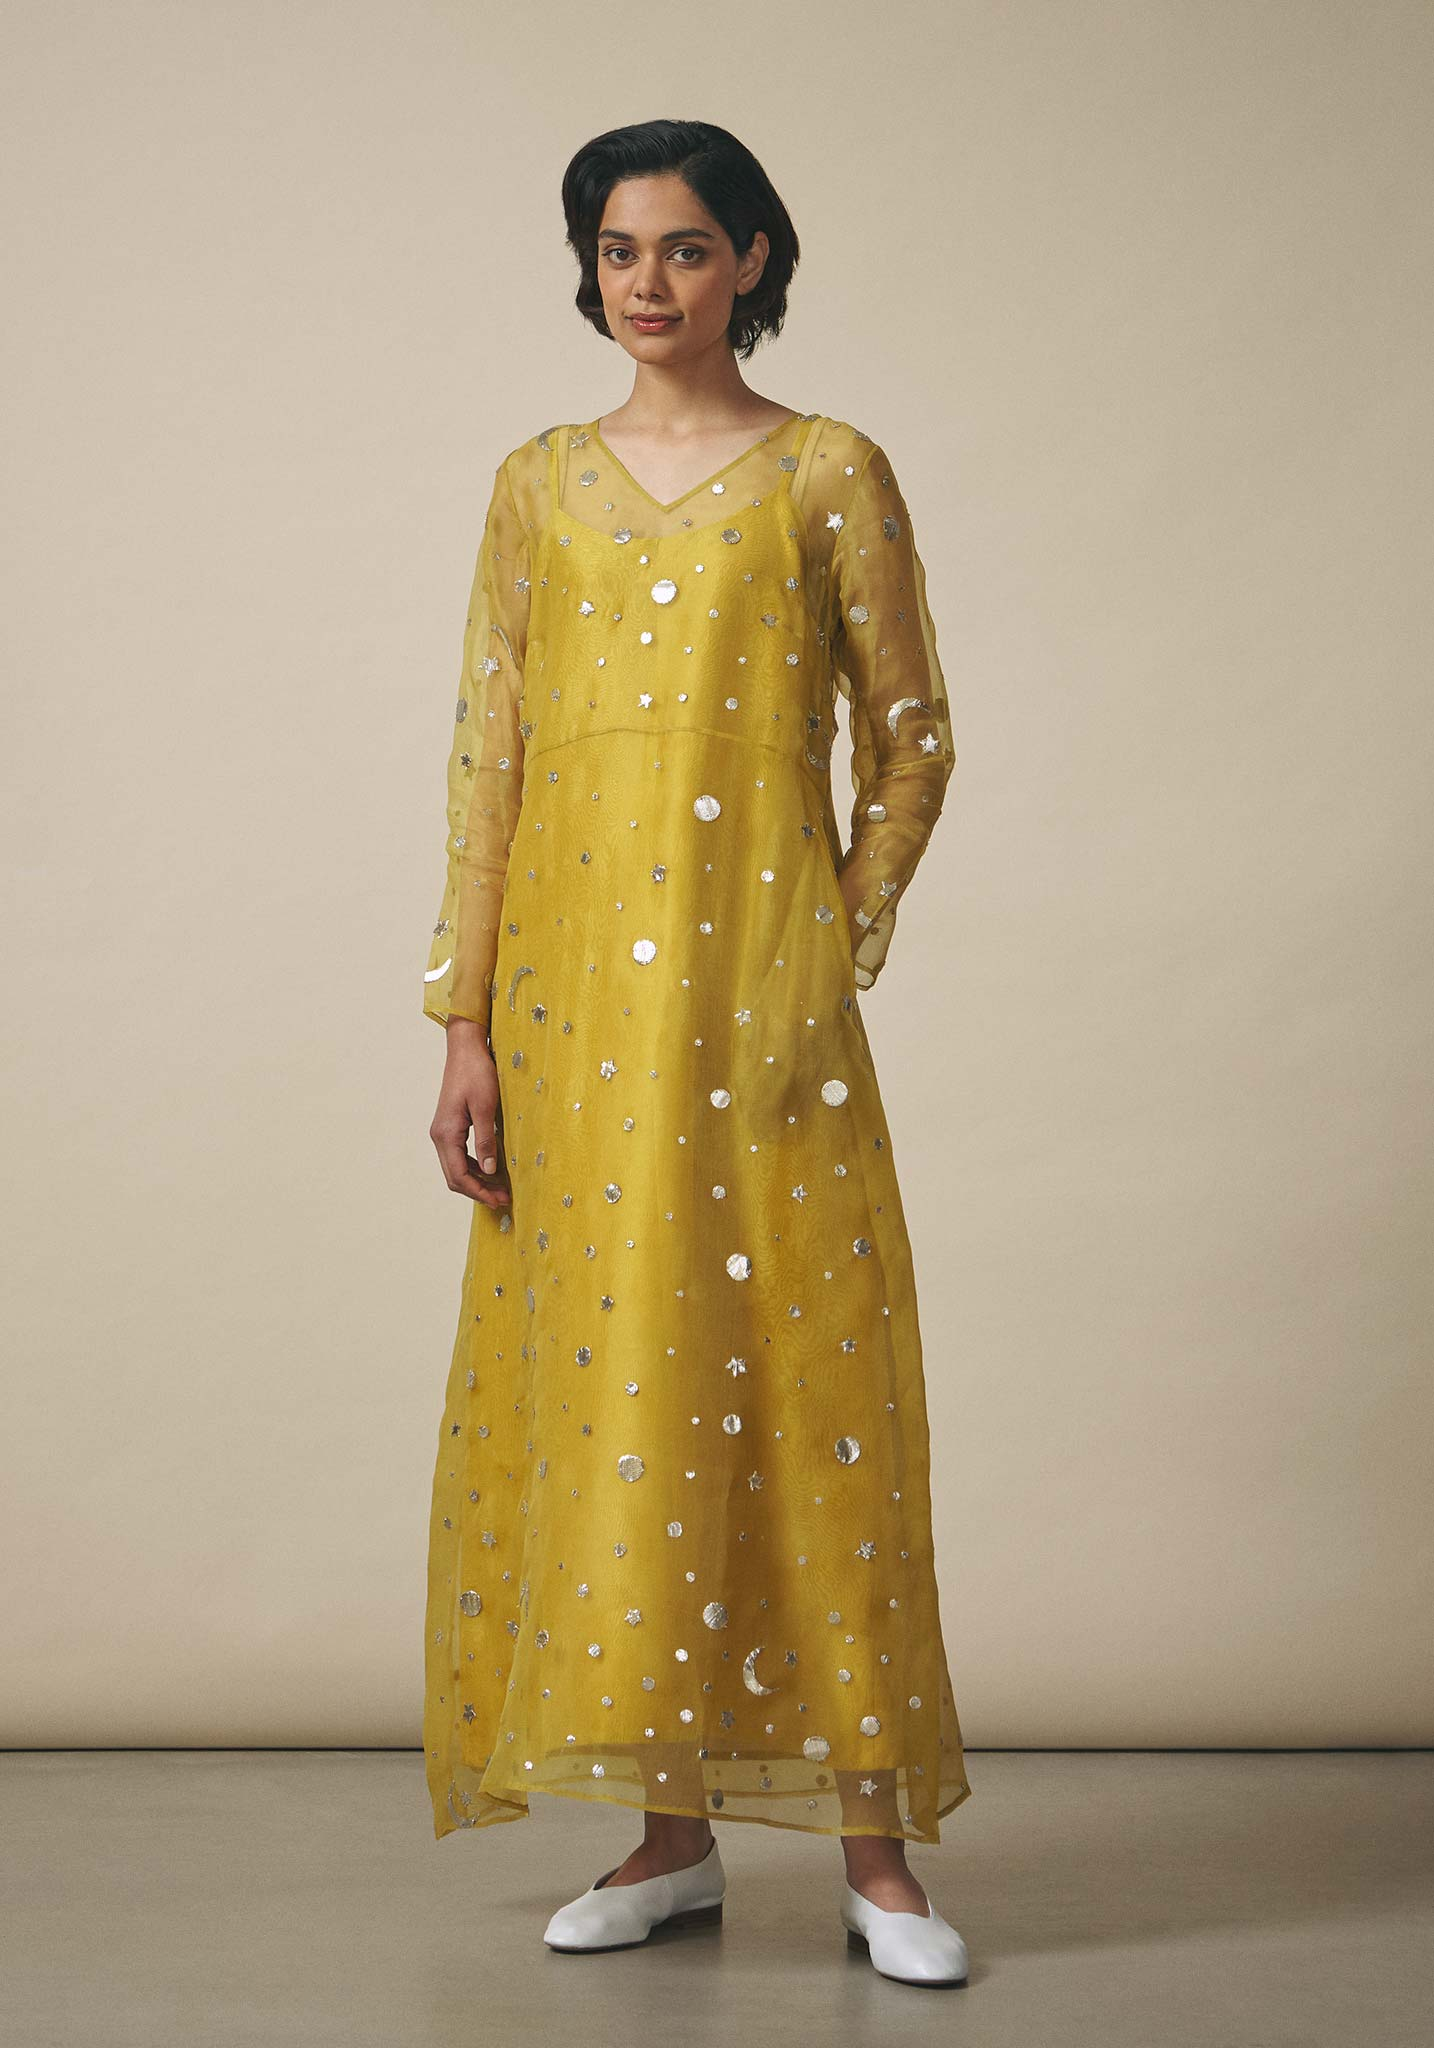 Zara Shahjahan, Organza Star-Embroidered Dress